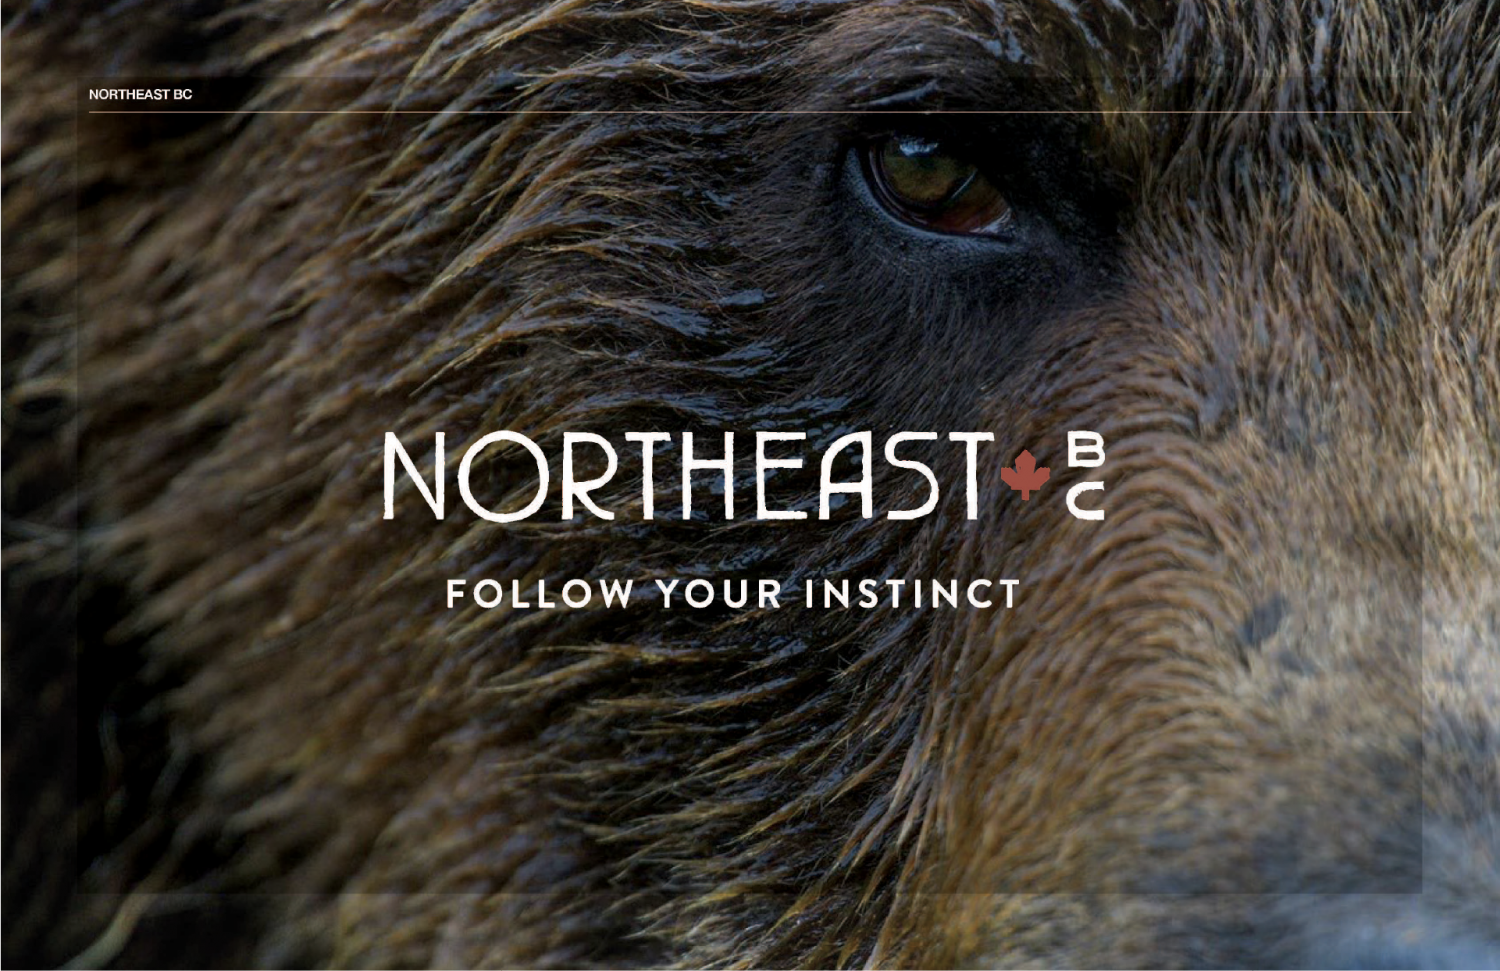 Northeast BC - Follow your instinct (picture of bear)